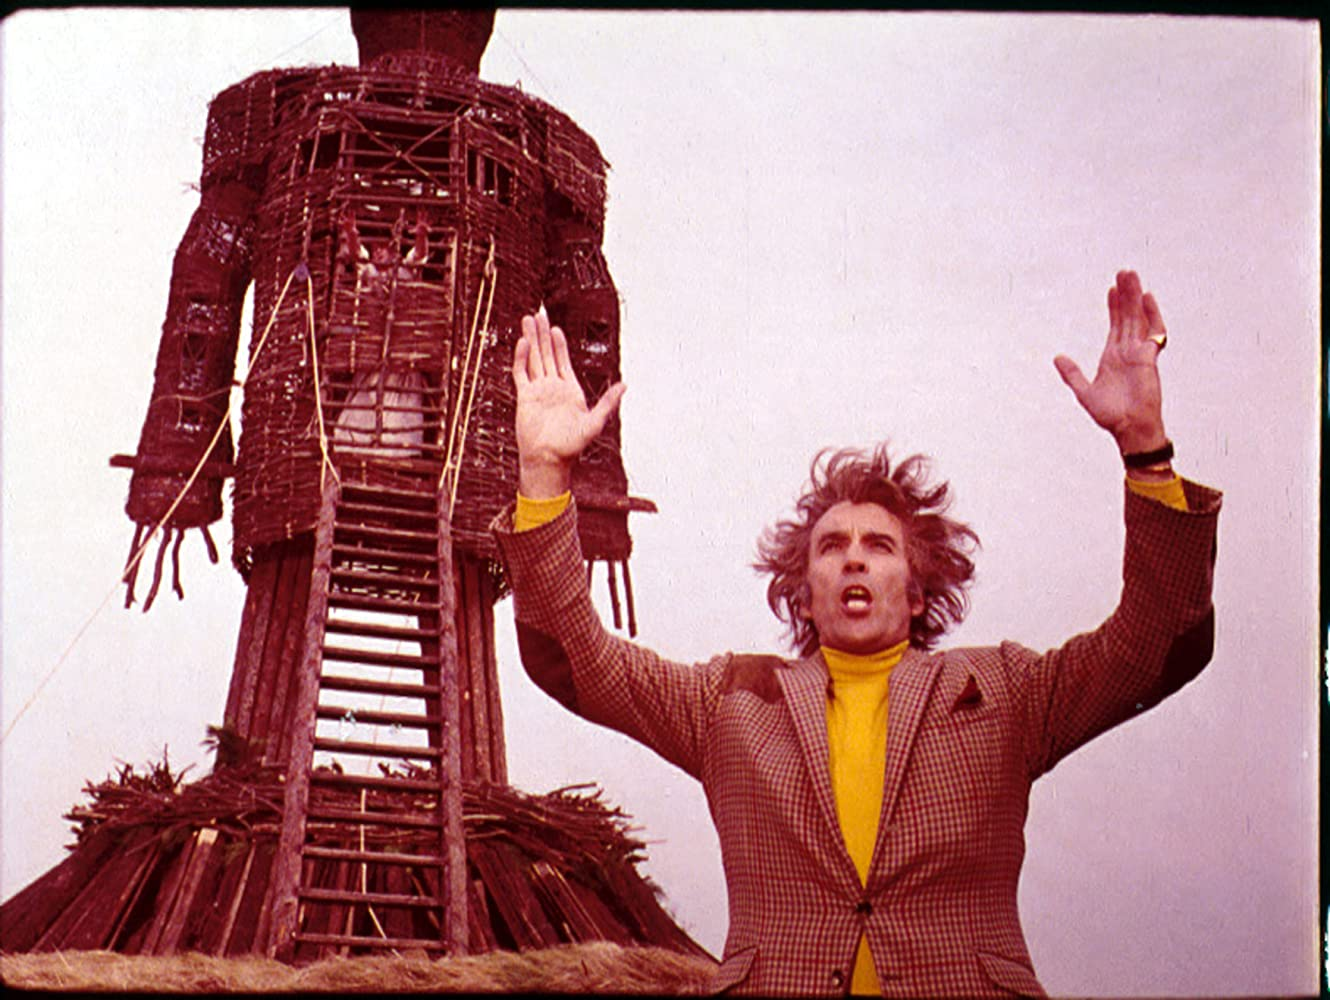 Christopher Lee in The Wicker Man (1973)